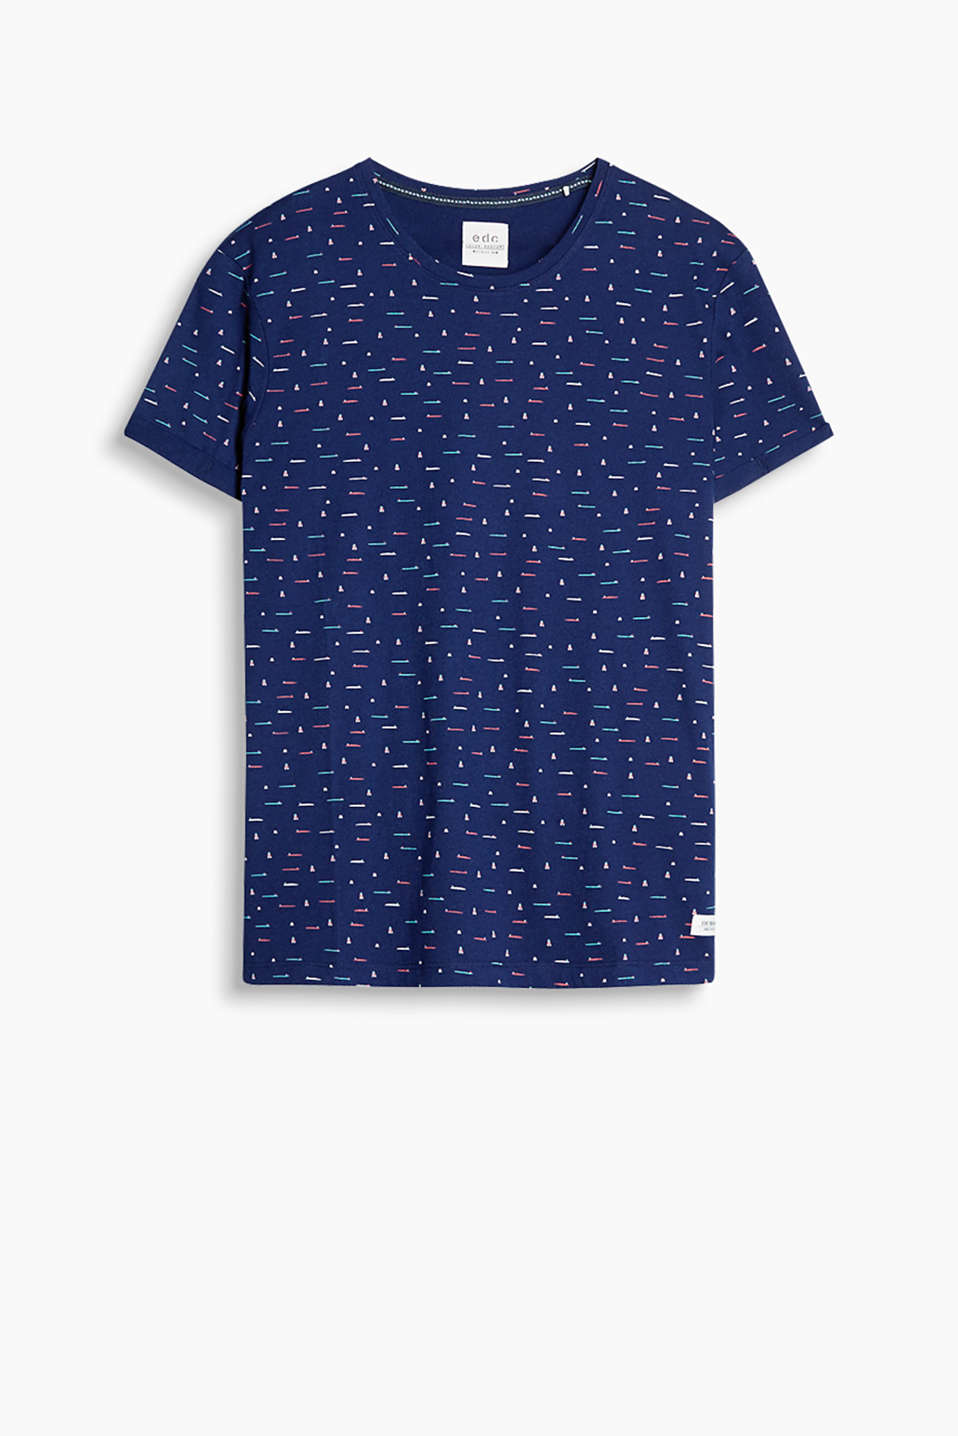 T-shirt with an all-over print and fixed, turn-up sleeve ends, made of 100% cotton